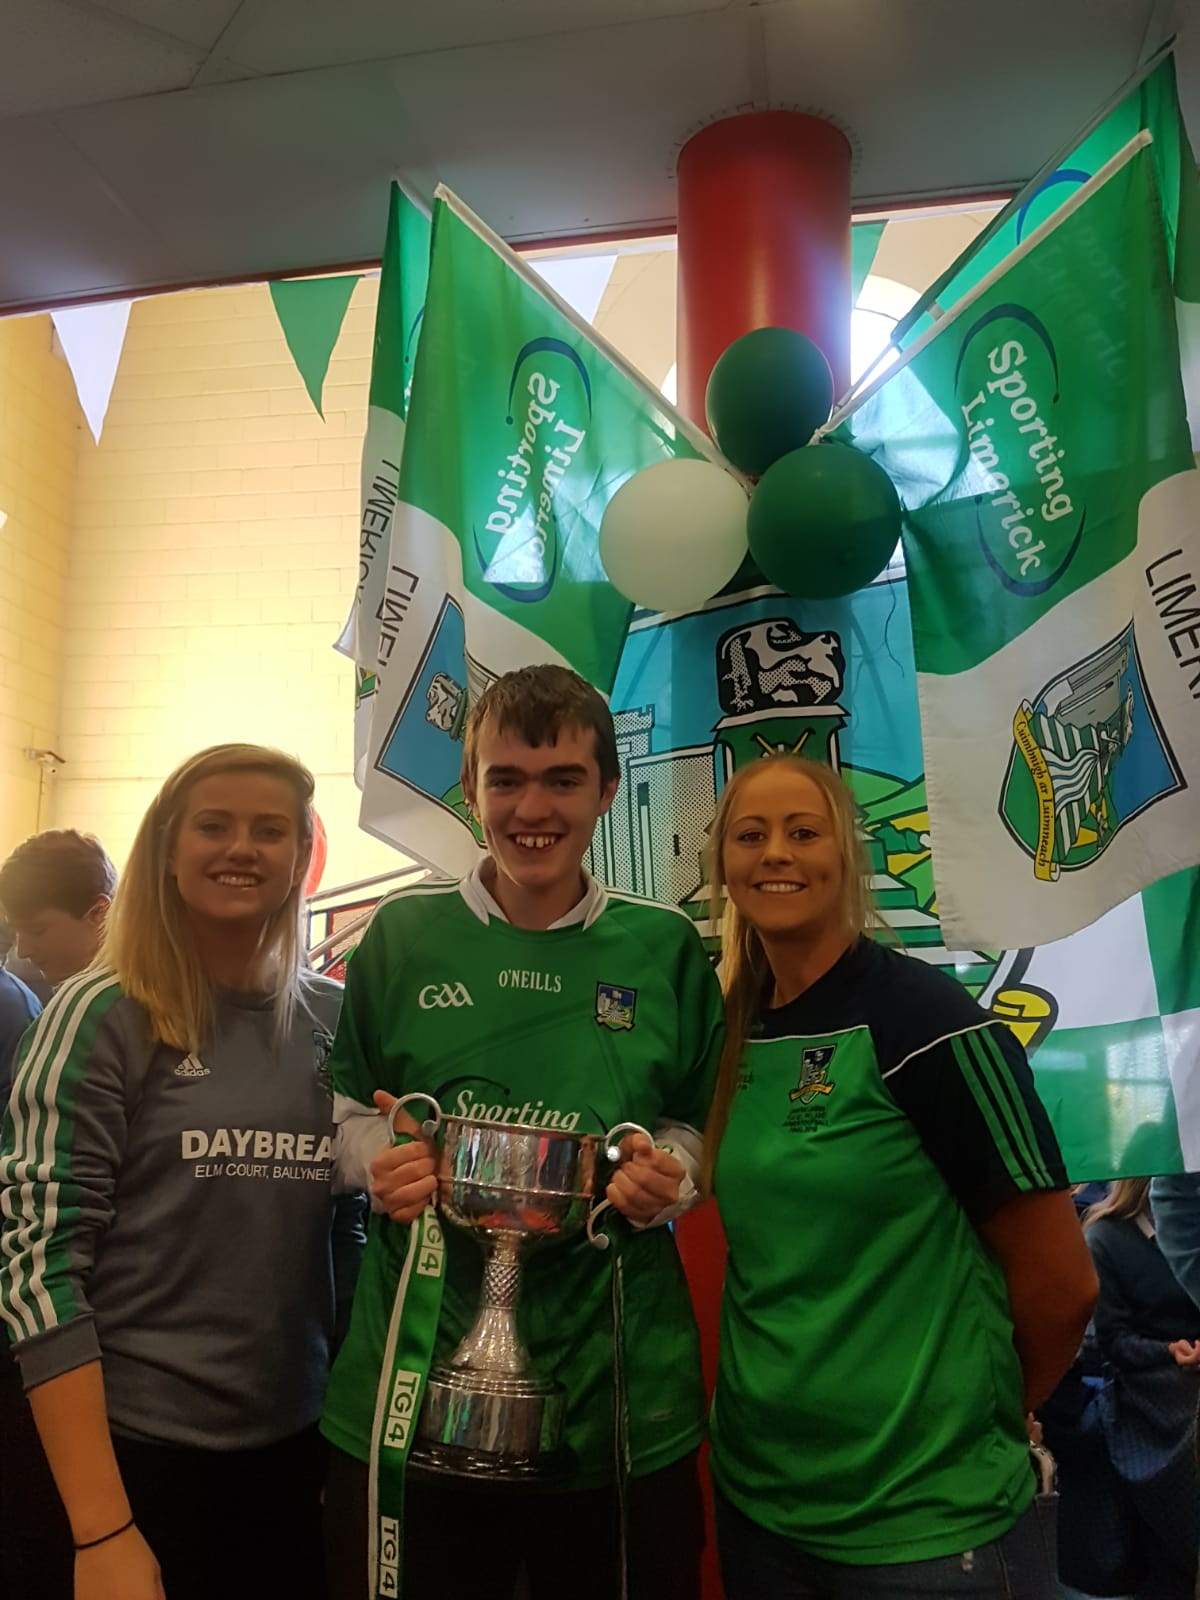 Desmond College and Colaiste are visited by All Ireland Football Champions and past pupils, Catriona Davis and Rebecca Delee